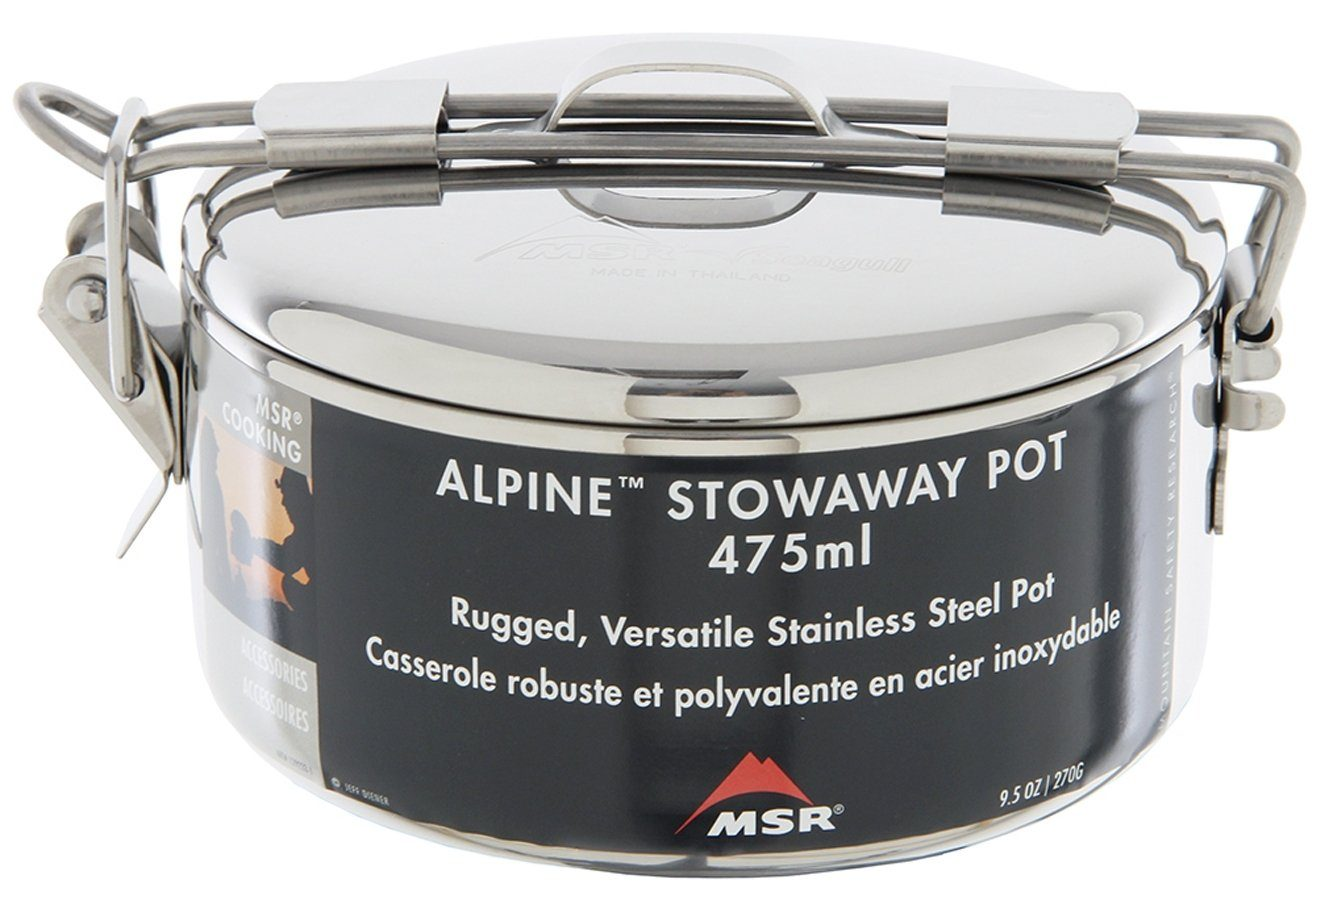 MSR Camping-Geschirr »Alpine Stowaway Pot 475ml«